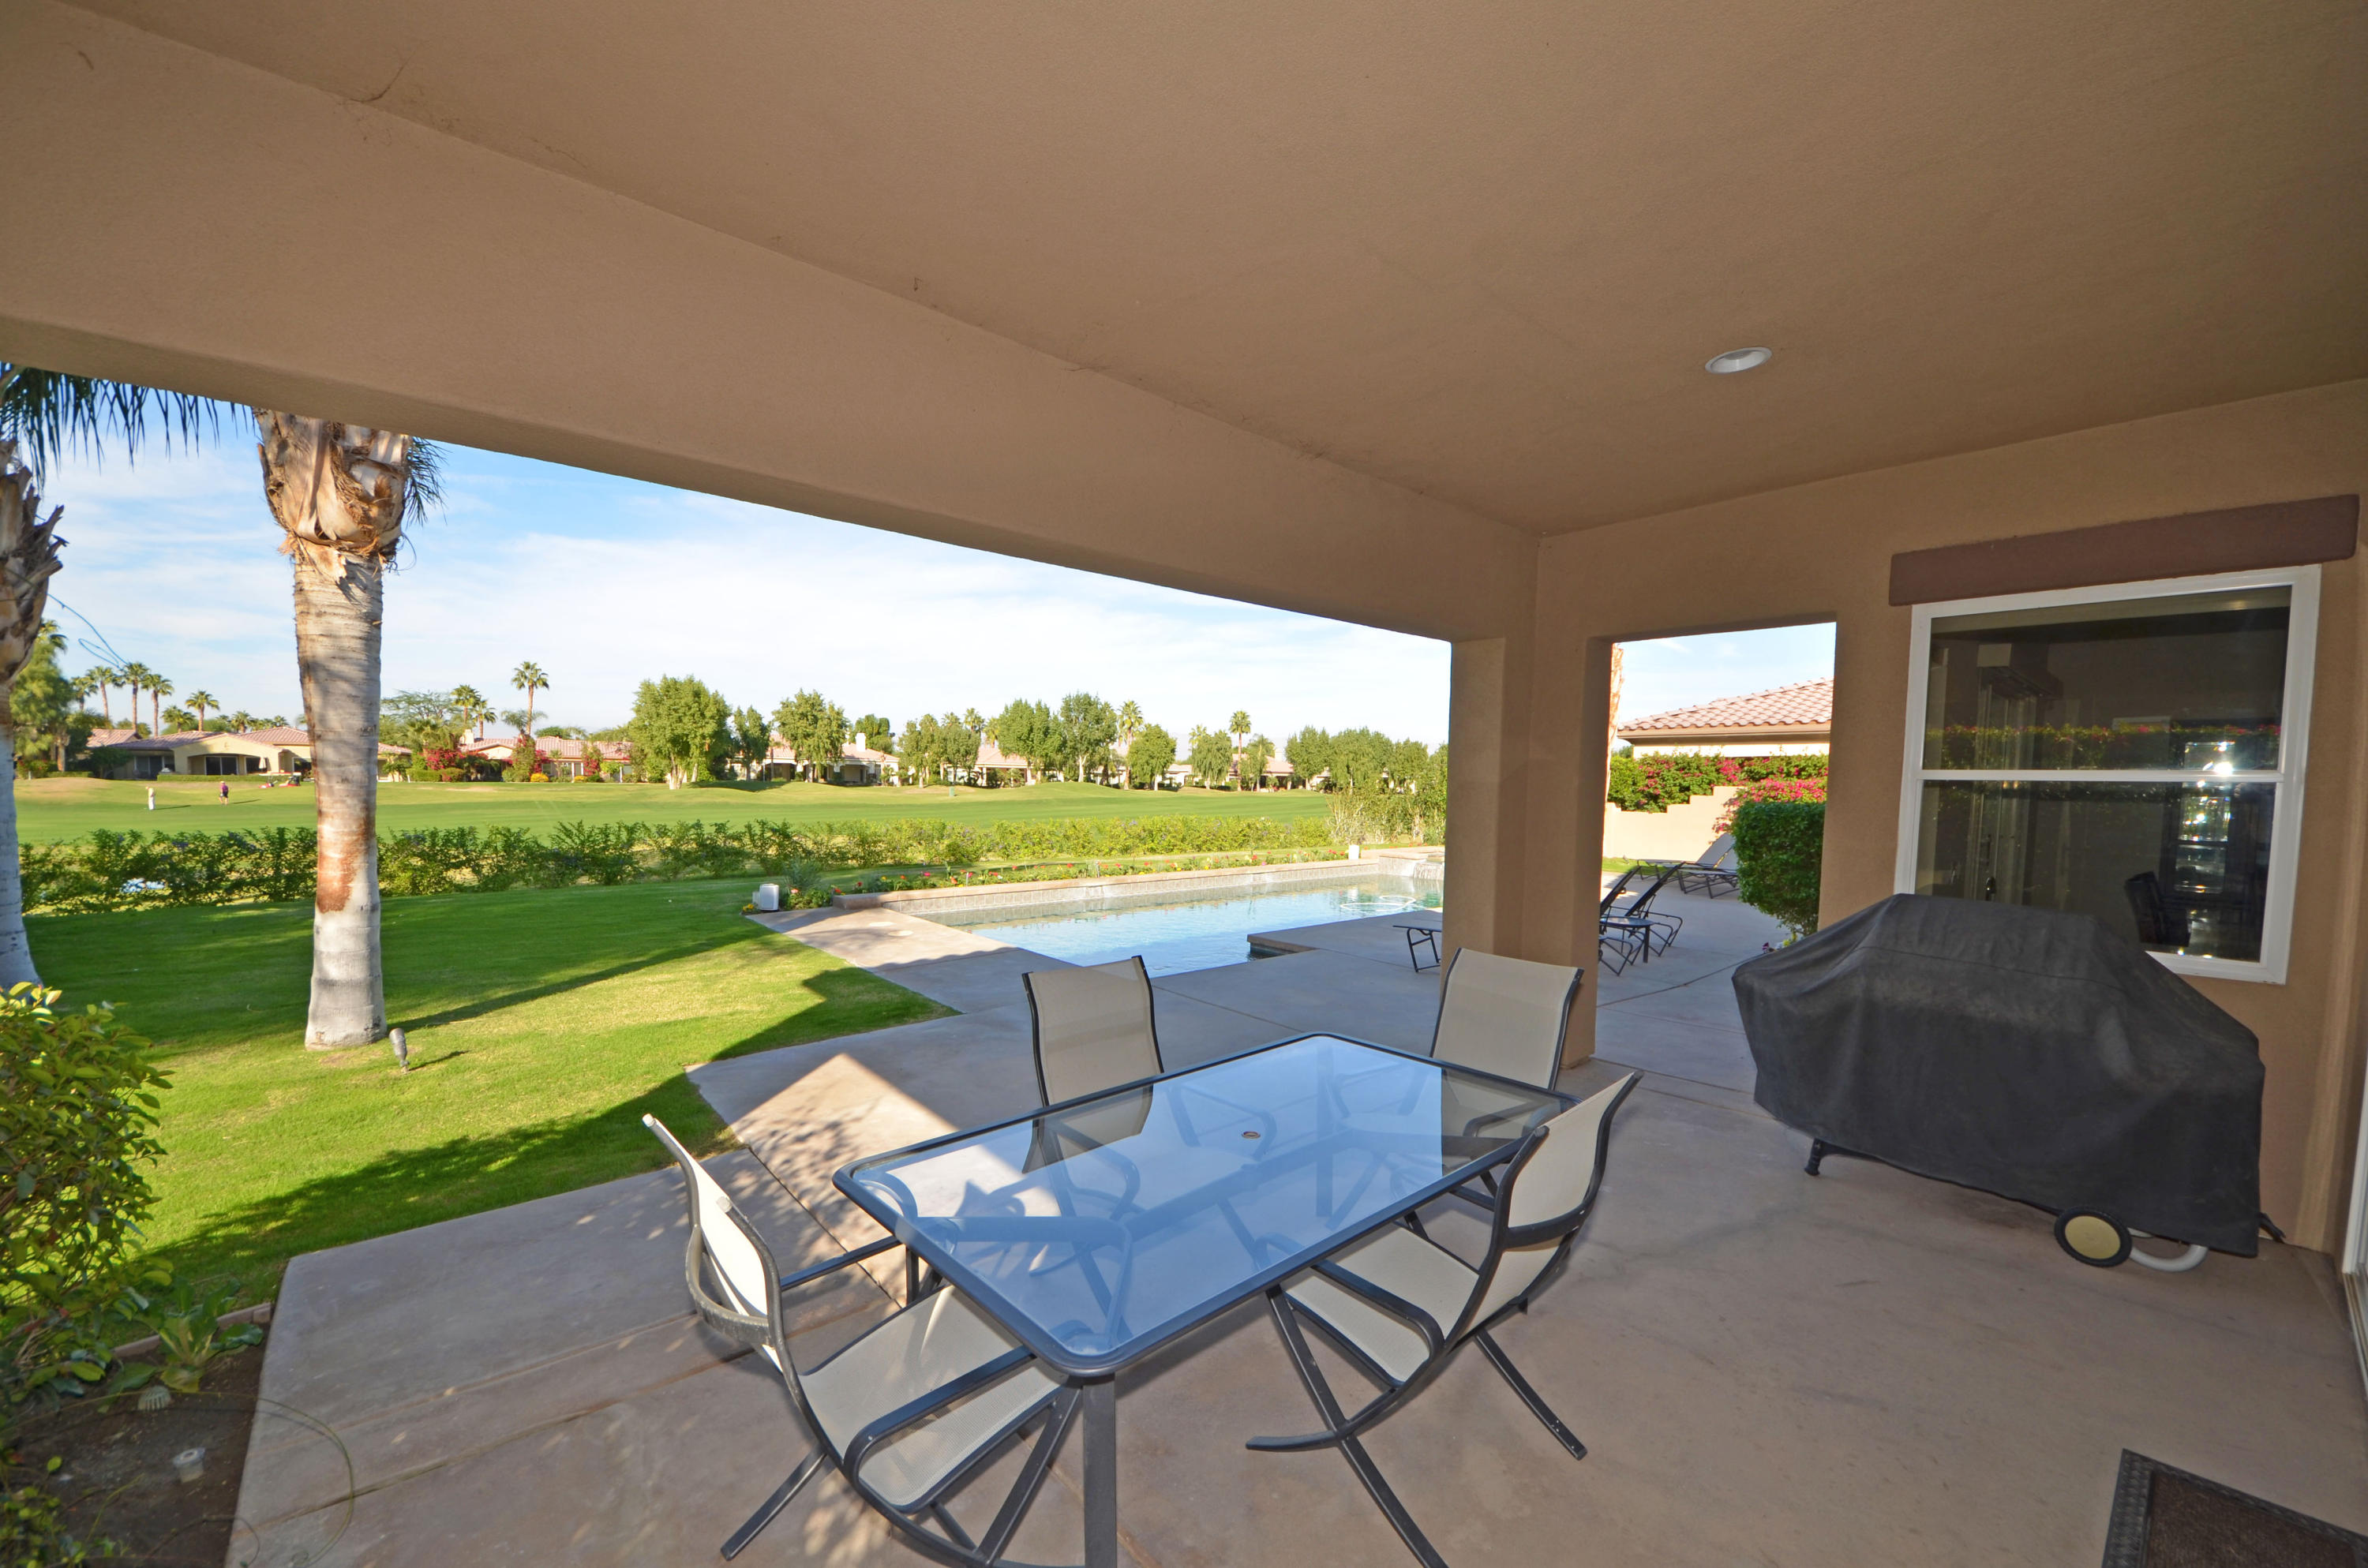 81280 Golf View Drive, La Quinta, California 92253, 4 Bedrooms Bedrooms, ,5 BathroomsBathrooms,Residential,For Sale,81280 Golf View Drive,219034073